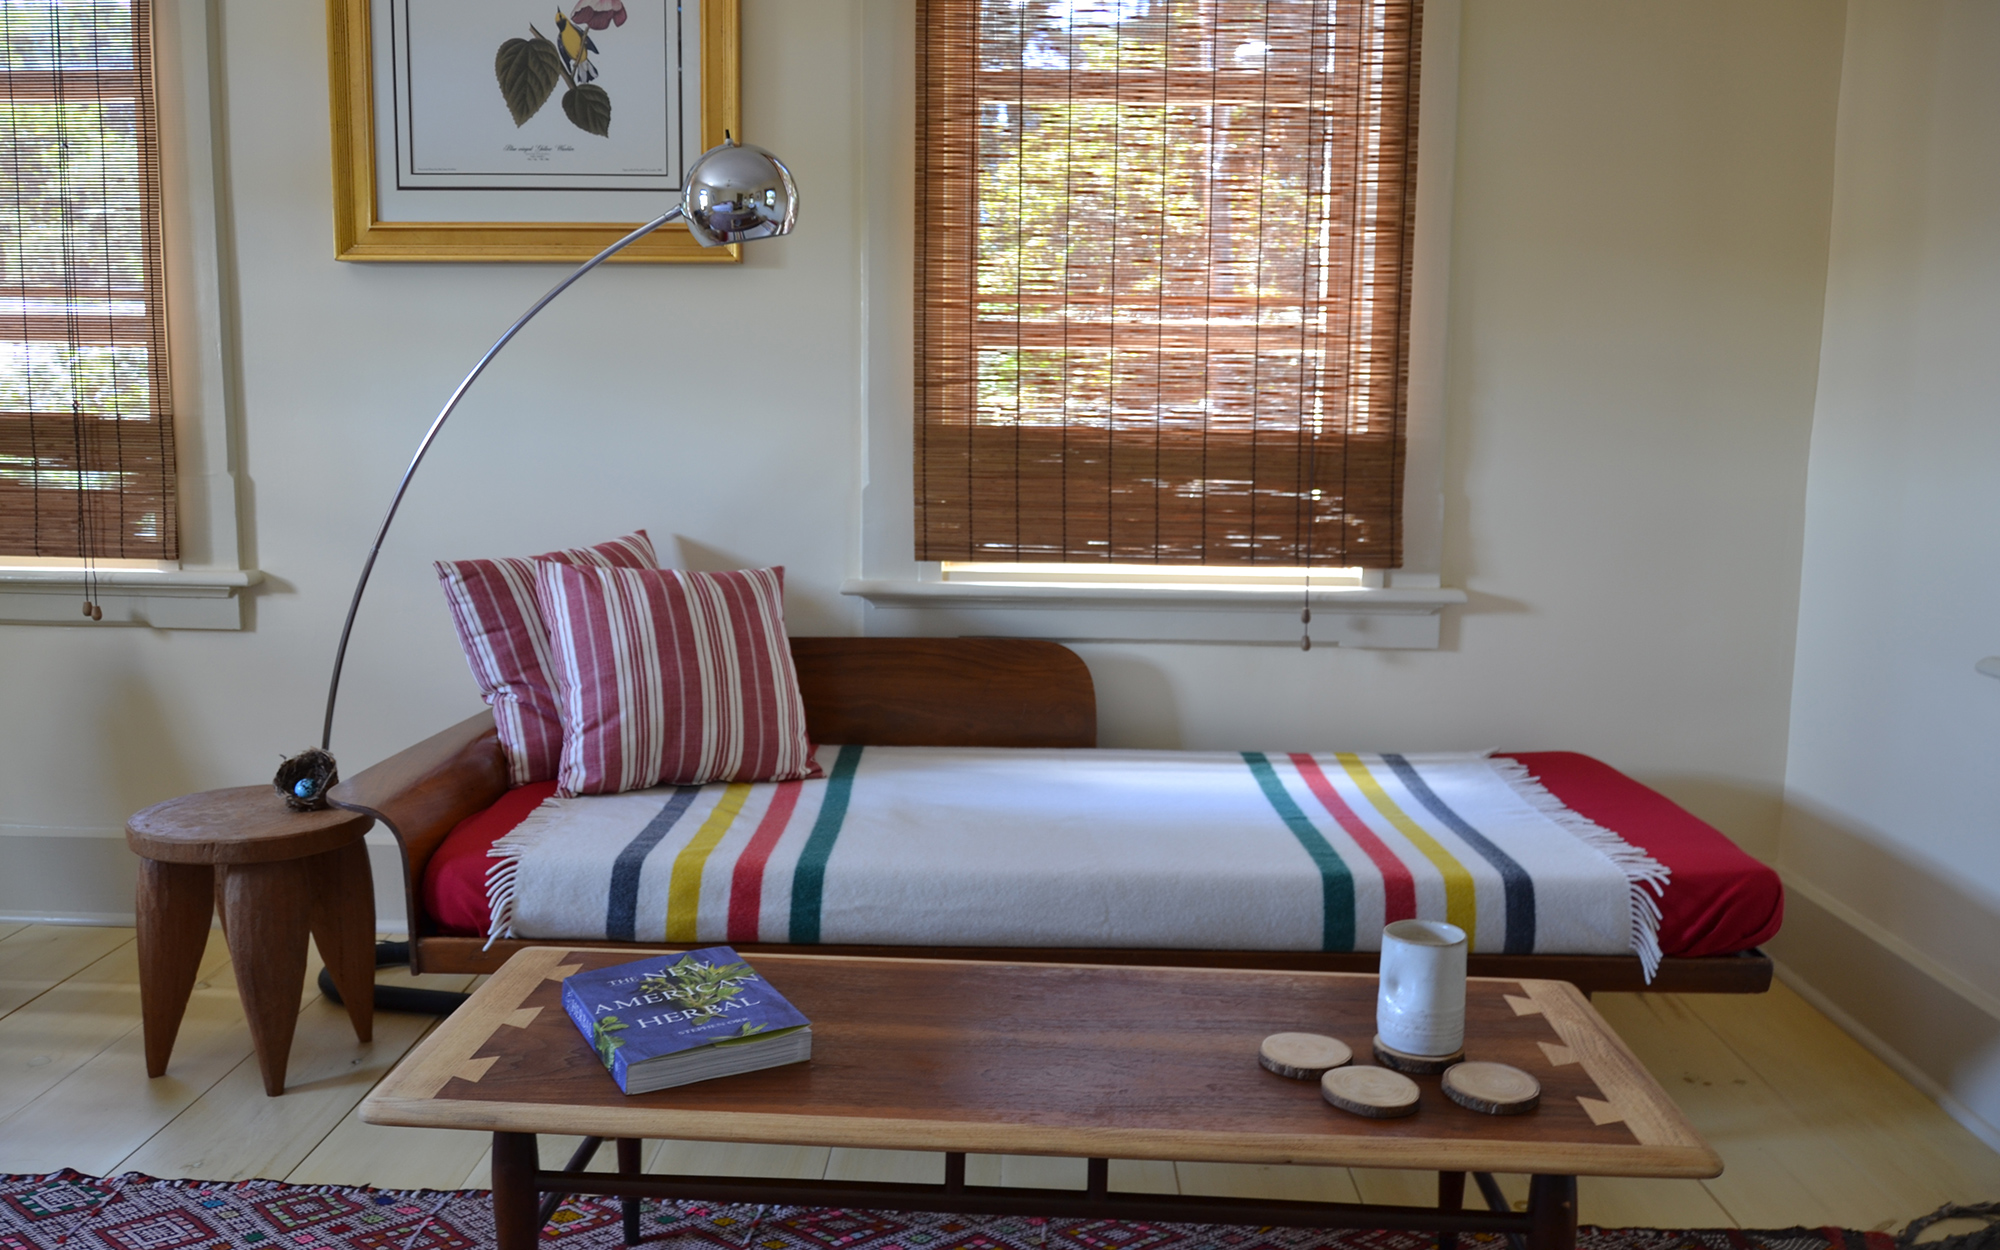 Hotels in the Catskills | Travel + Leisure